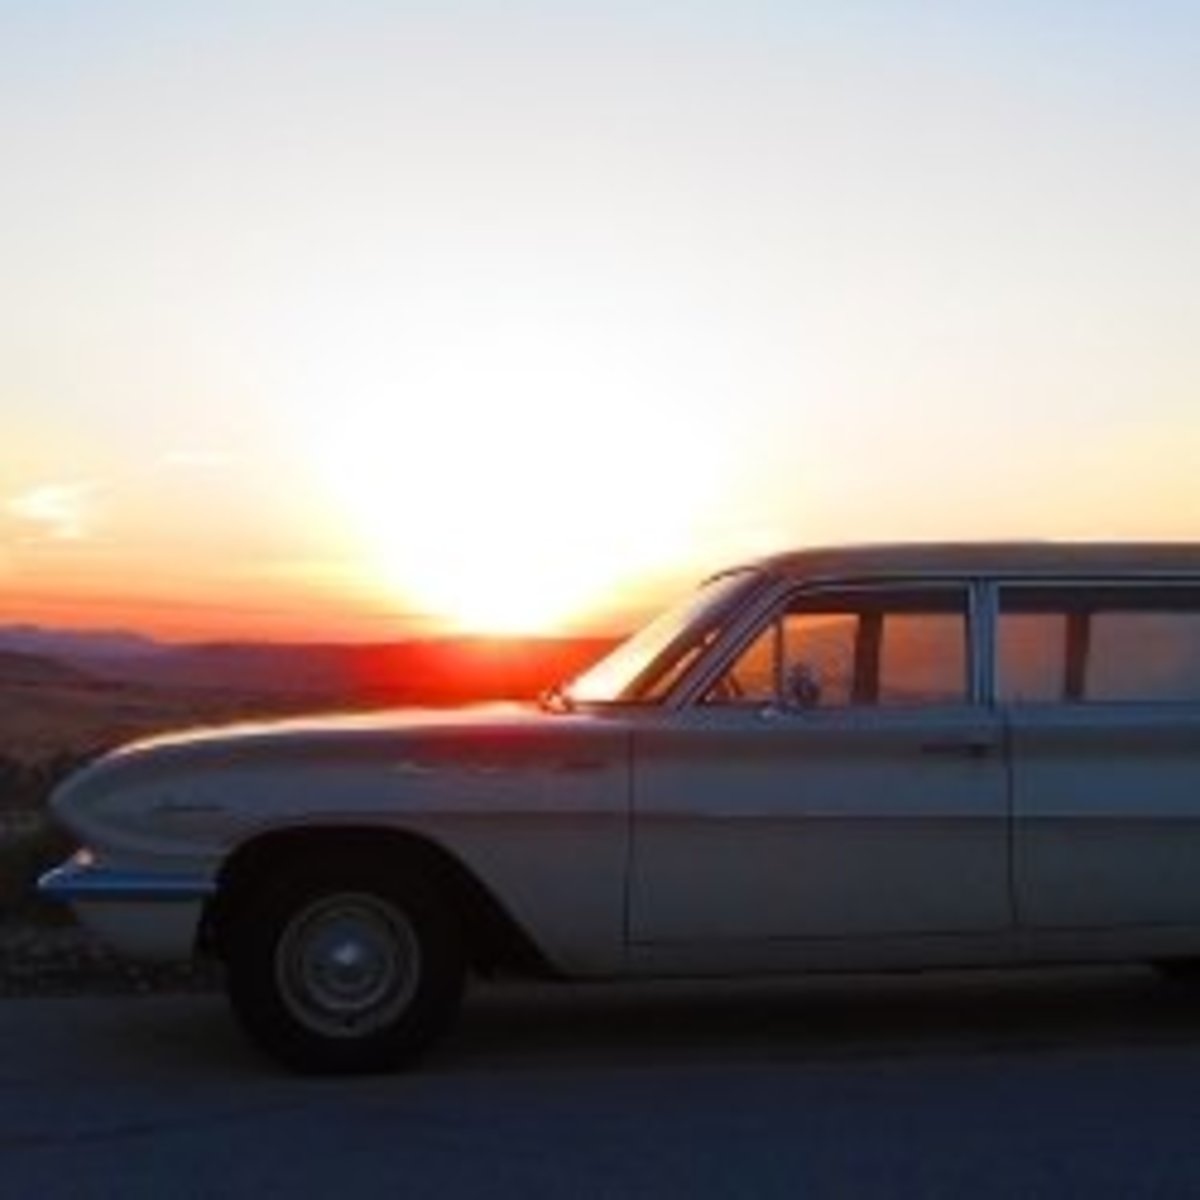 Classic and Vintage Station Wagons - Why They're Awesome, Why You Want One, and Where to Find Them